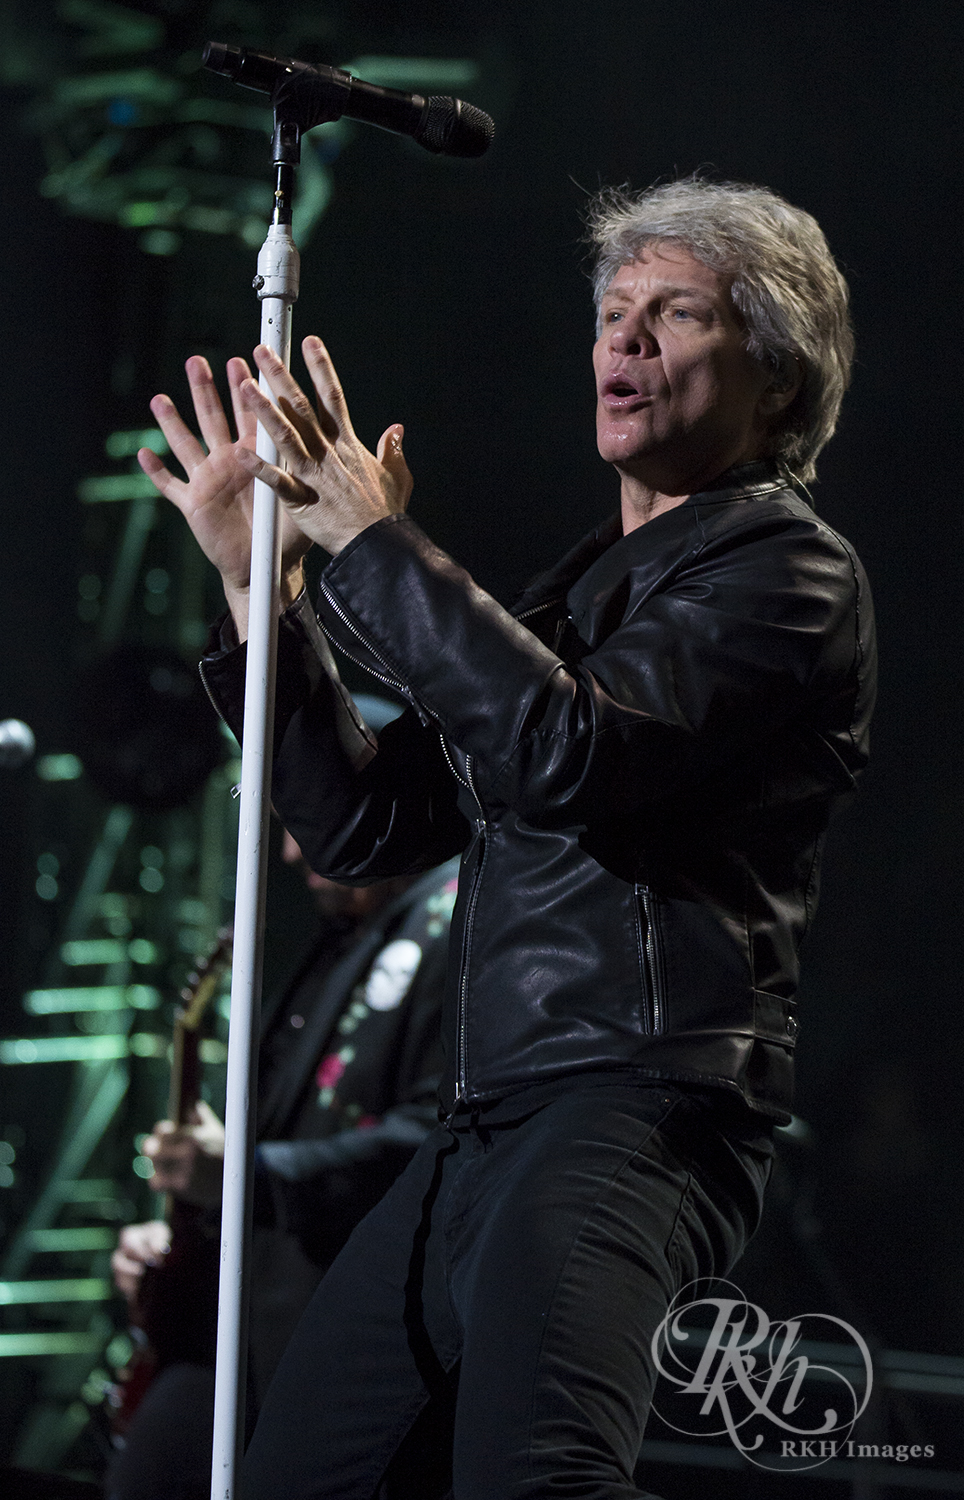 bon jovi rkh images (20 of 30).jpg